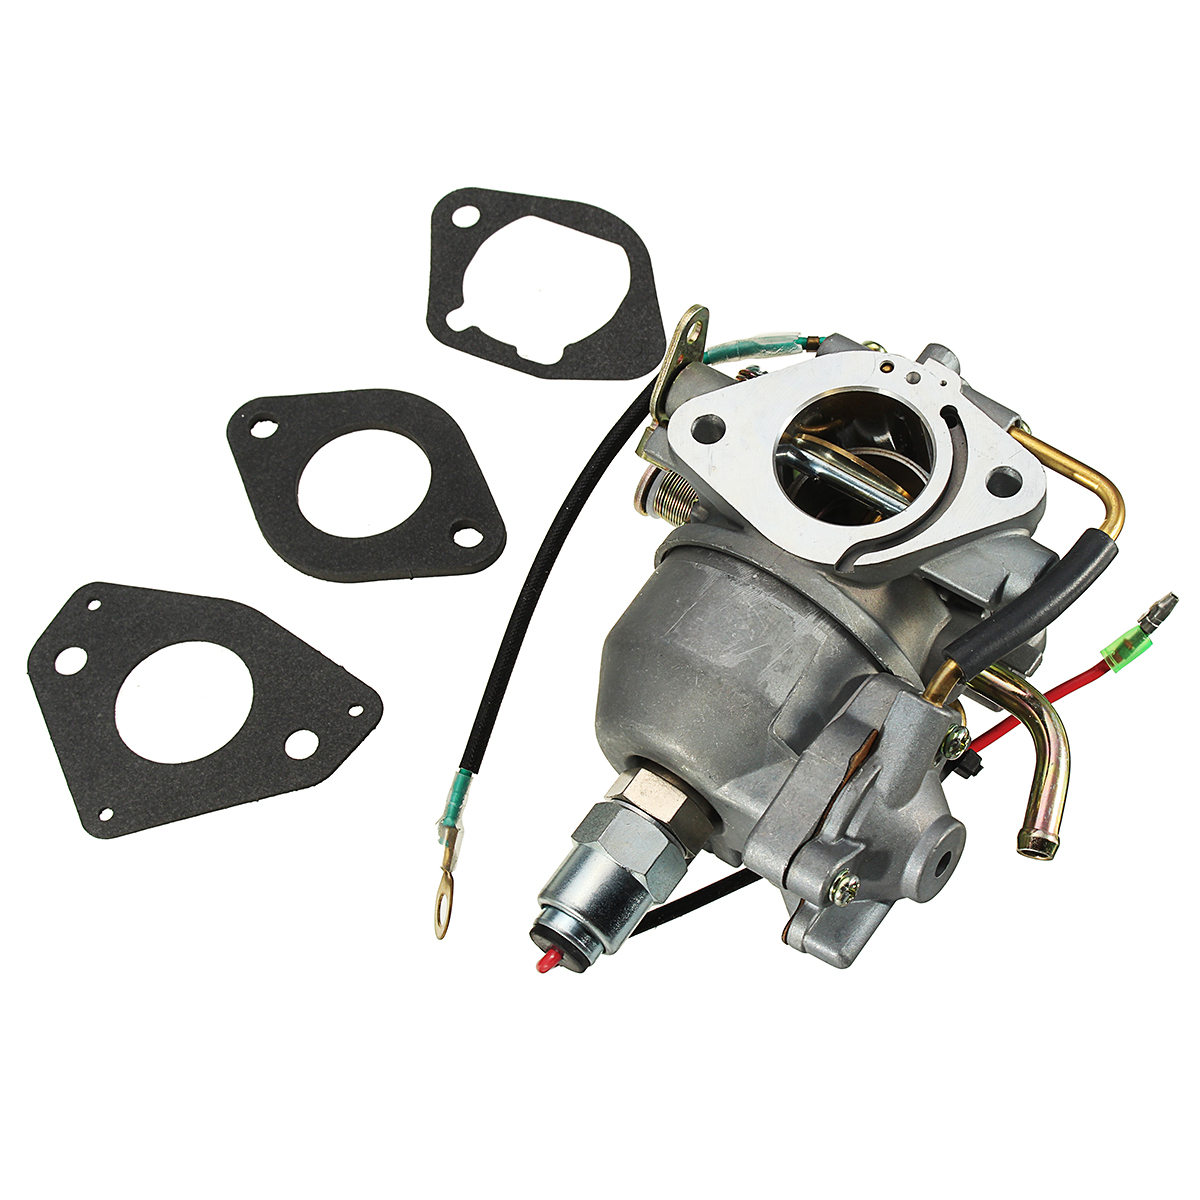 Carburetor for Kohler CV730 S CV740 S 25HP 27HP Engine Tractor Carb  24853102 S-in Carburetor Parts from Automobiles & Motorcycles on  Aliexpress com |